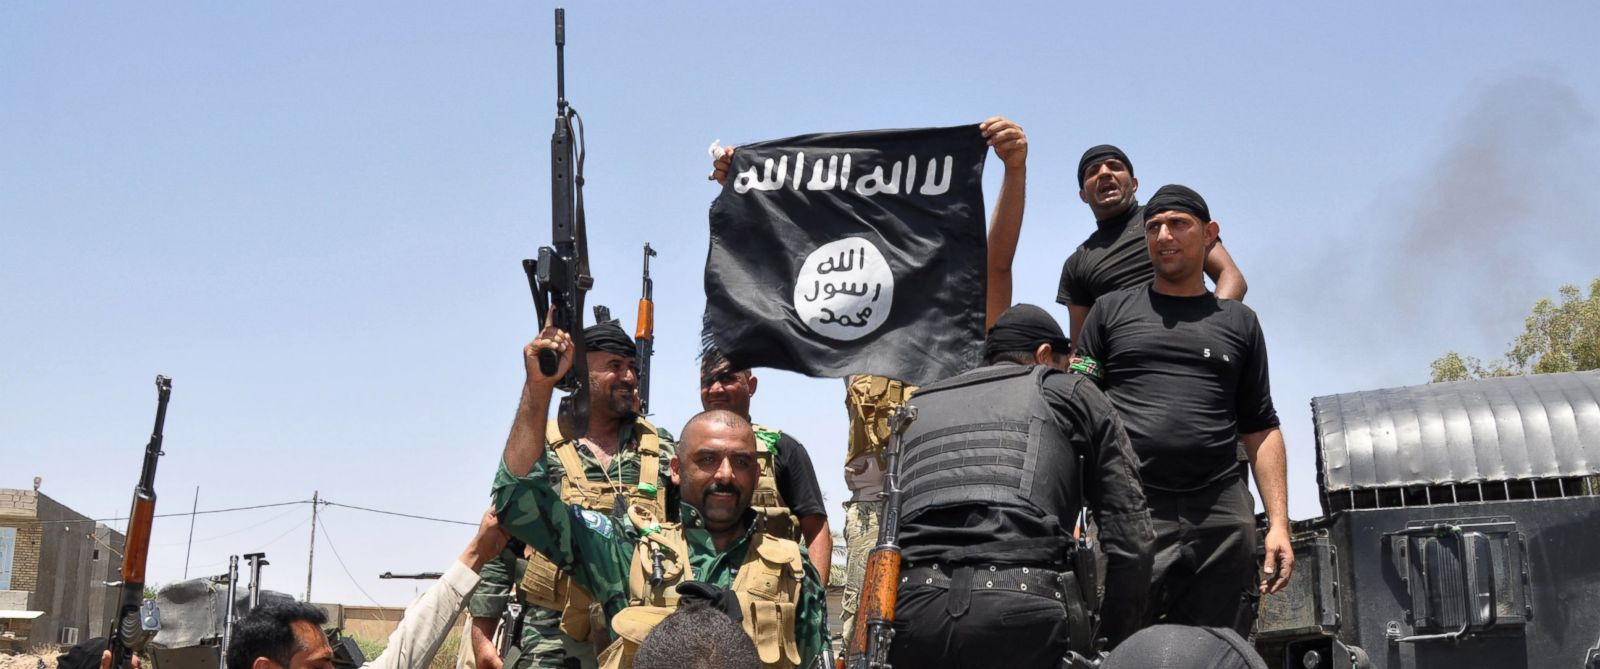 PHOTO: Iraqi security forces hold up a flag of the the jihadist group ISIS that they captured during an operation to regain control of Dallah Abbas 35 miles outside of Baghdad, Iraq on Jun 28, 2014.